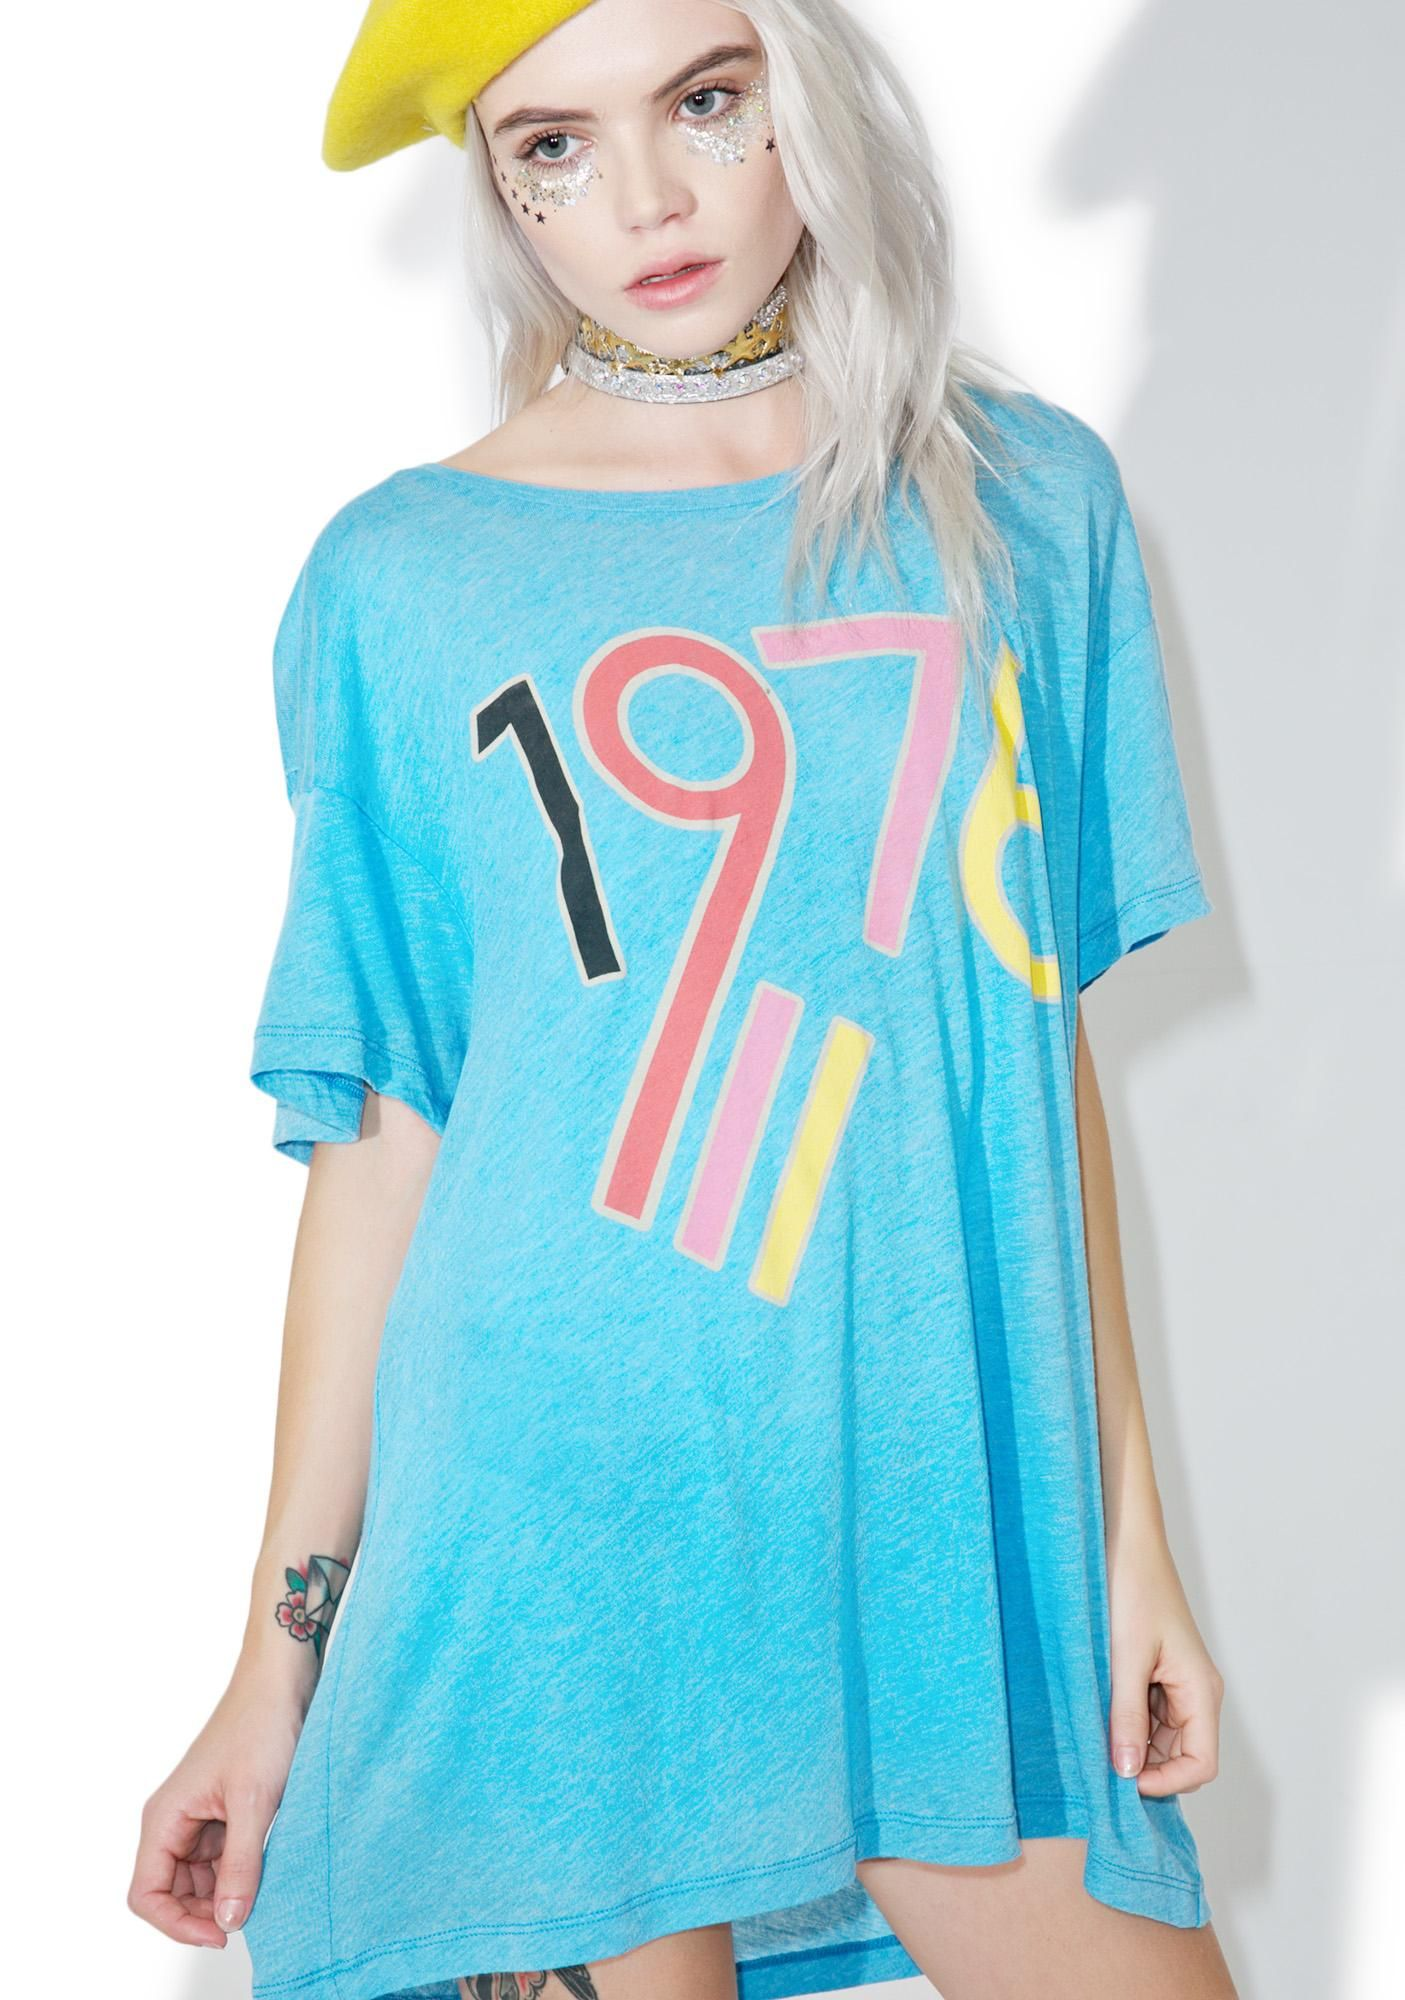 1976 Manchester Tee Clothes Design Wildfox Couture Streetwear Outfit